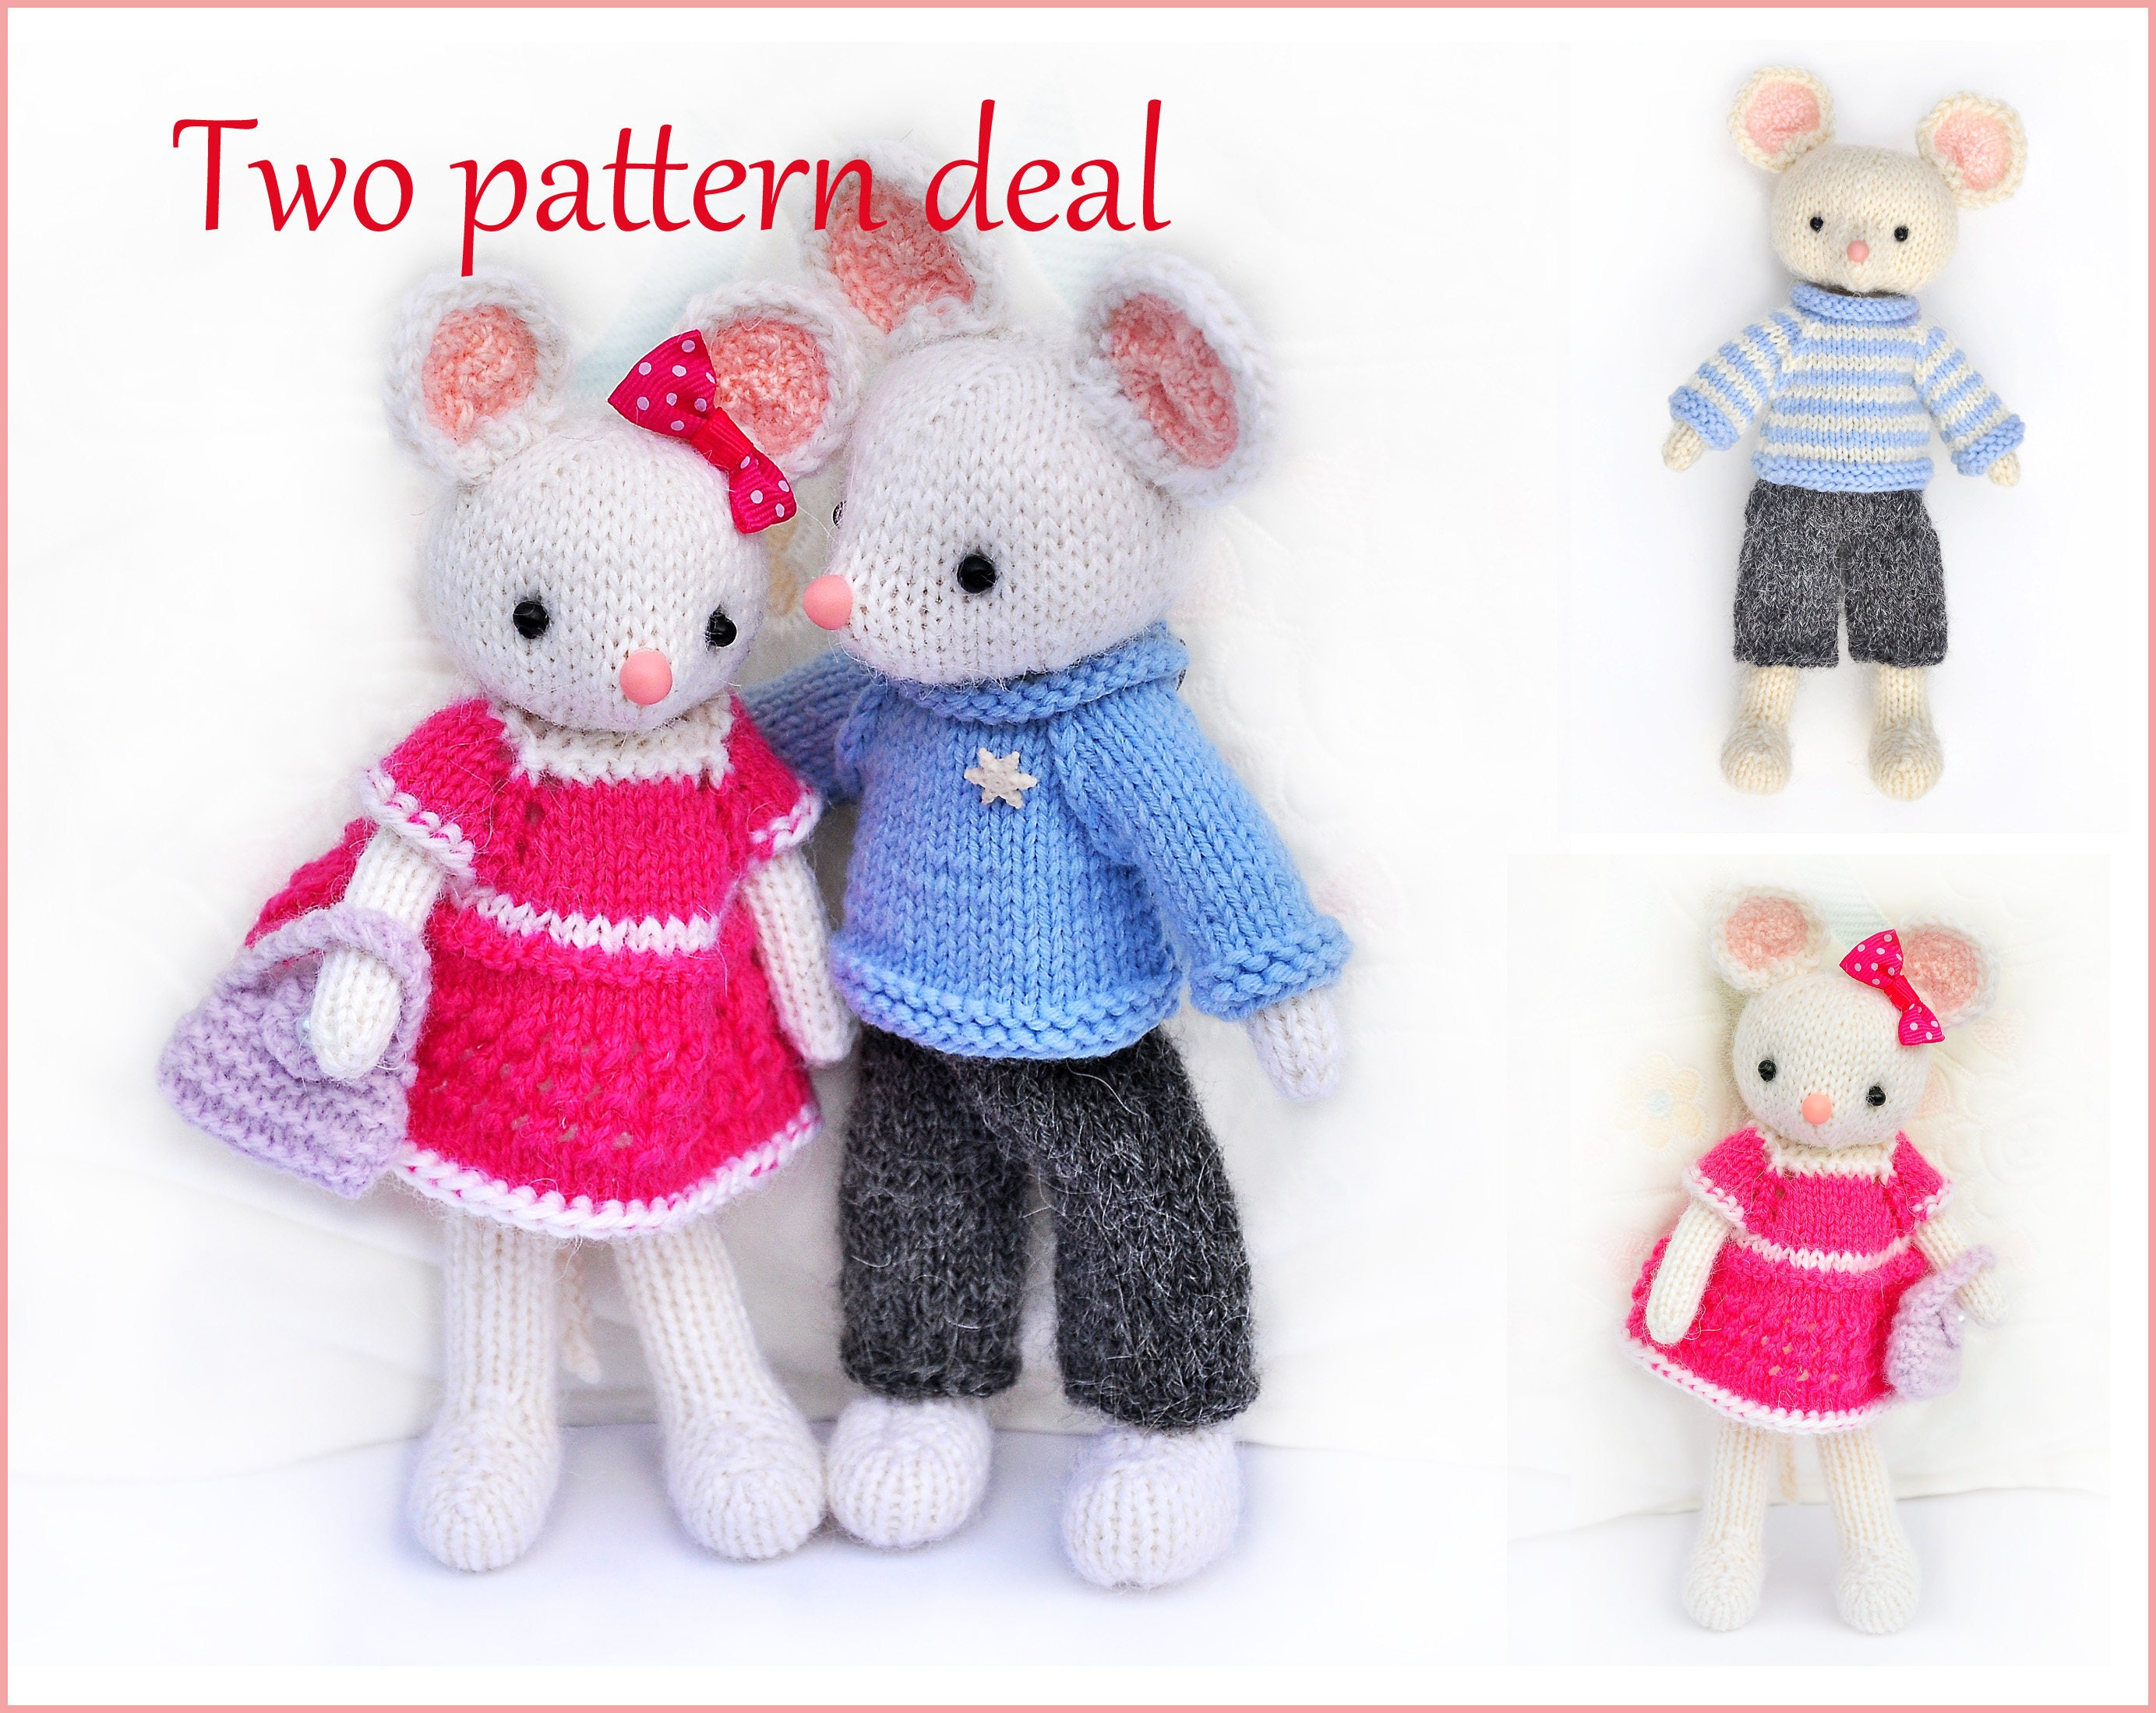 Toy knitting patterns-Two pattern deal-Little mice Lilly and | Etsy